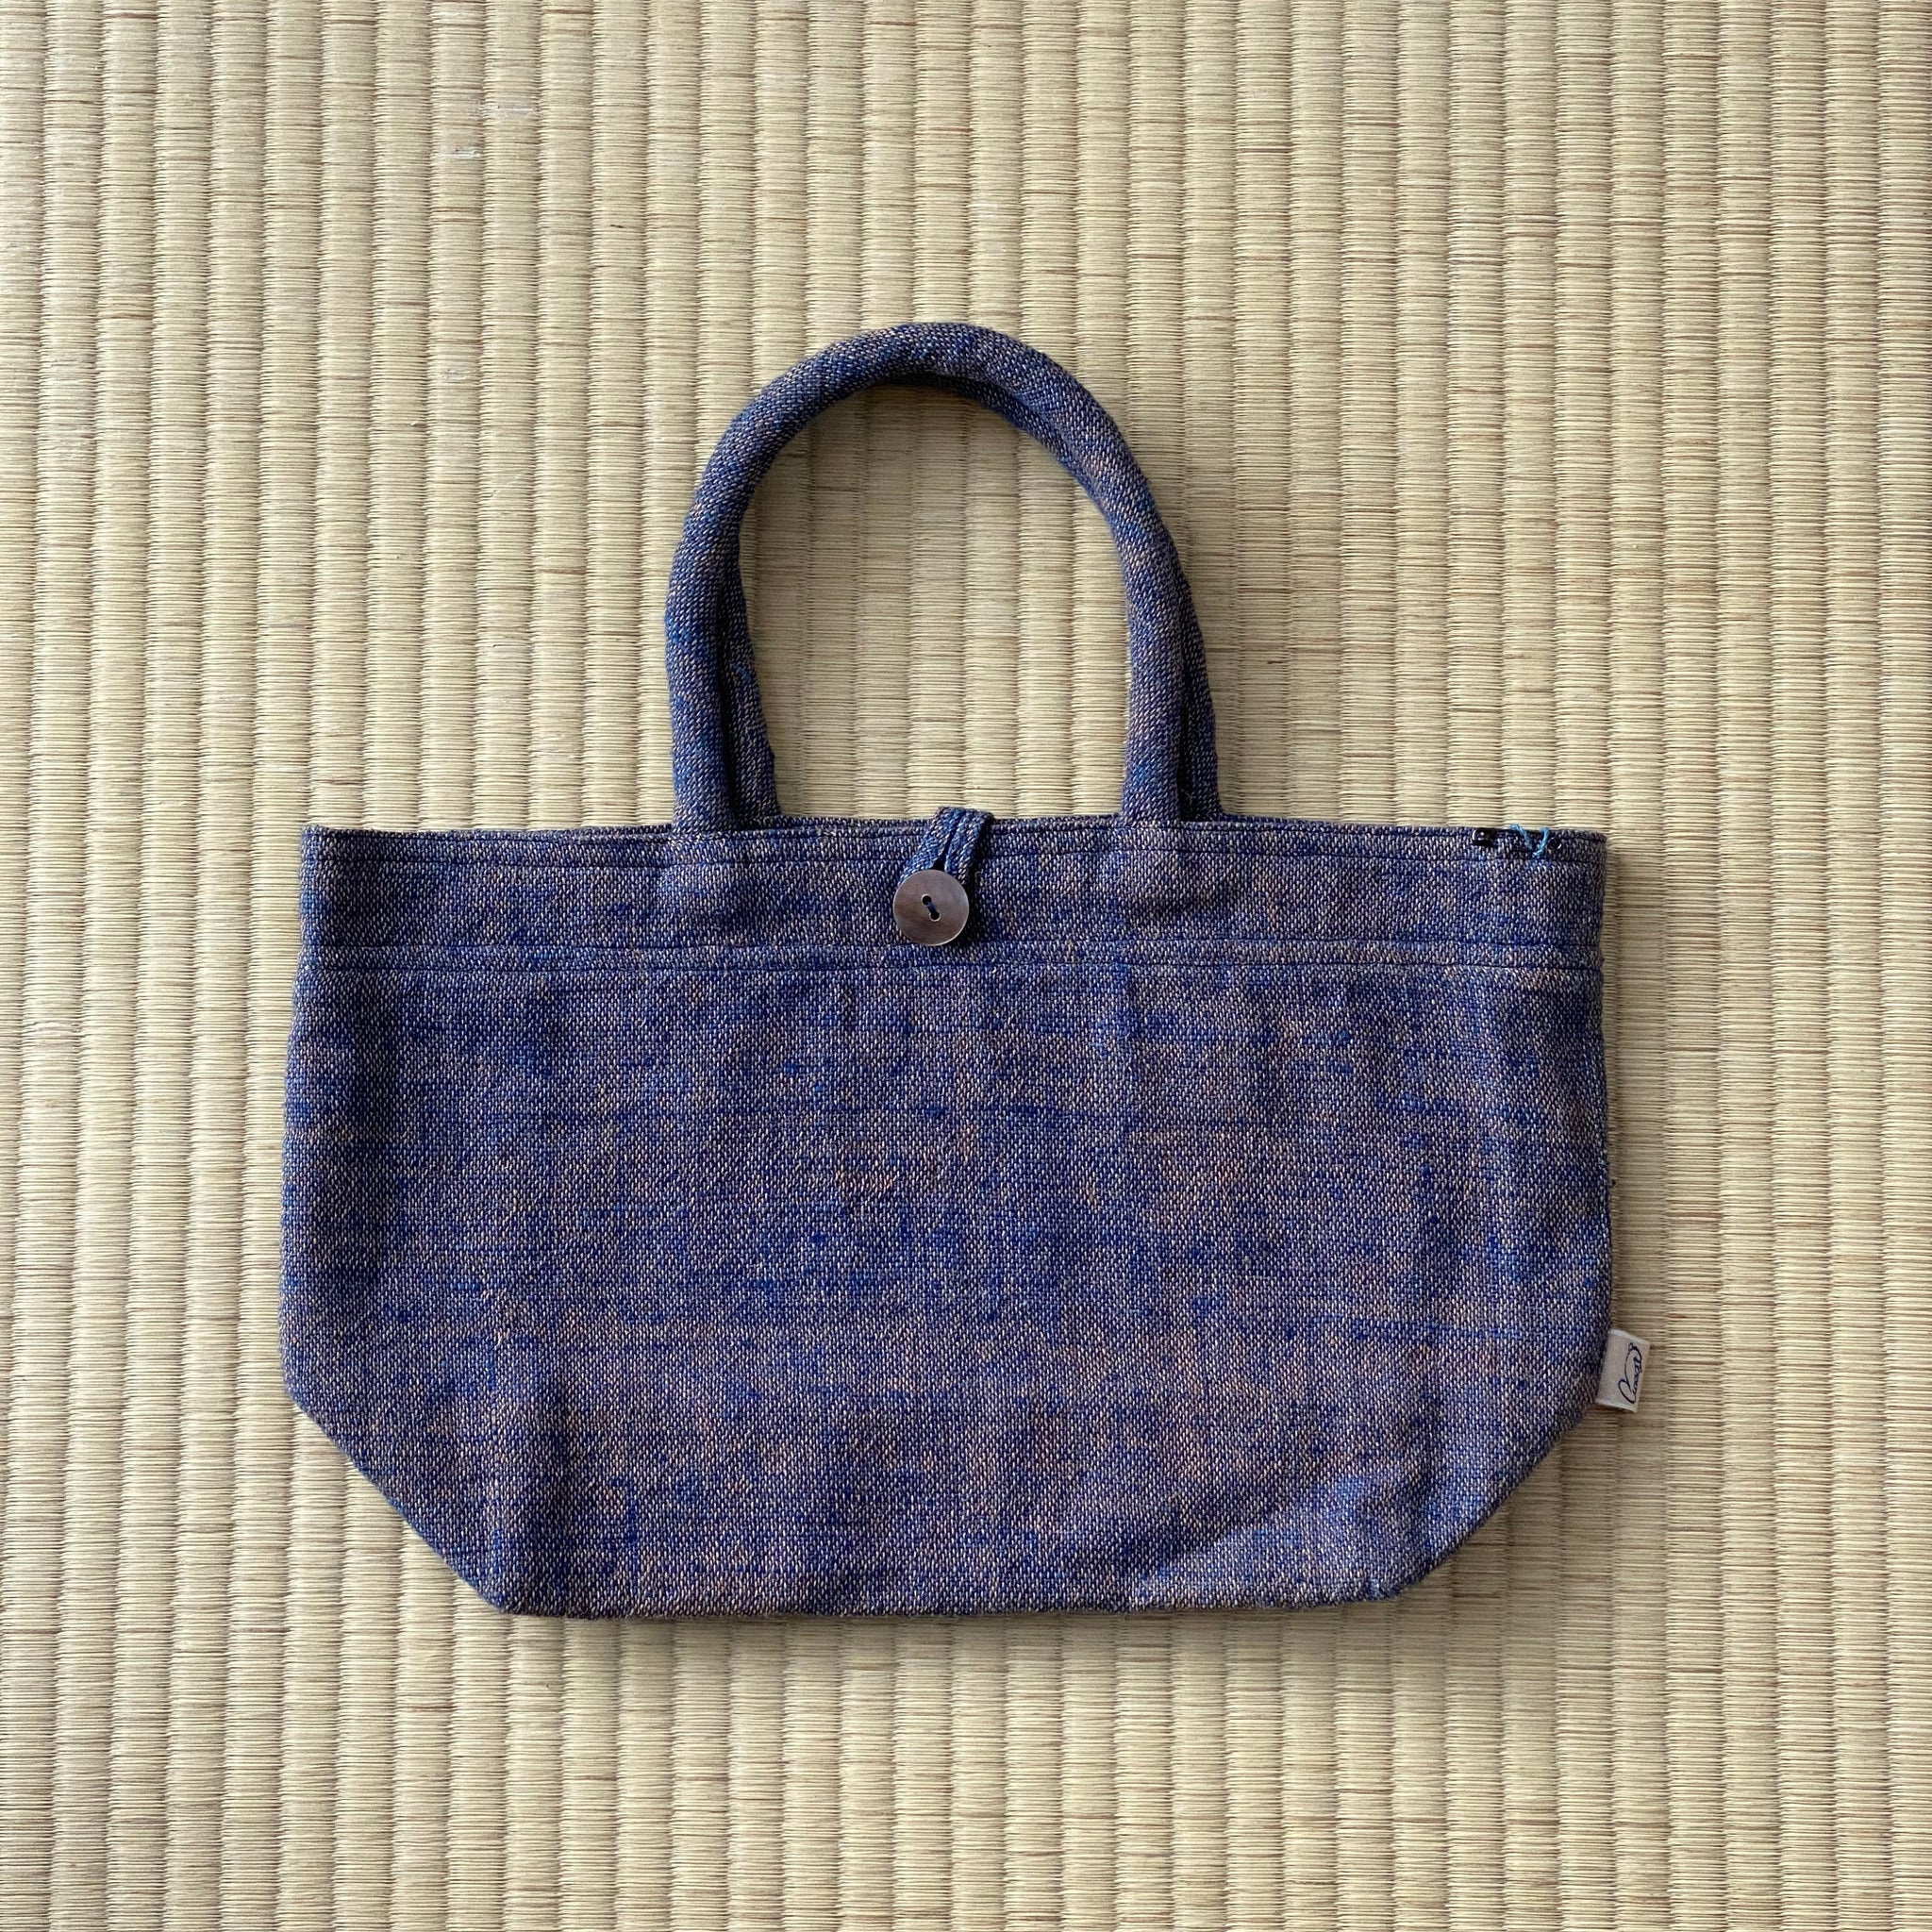 Small Bag With Handles 7094J - Purple / Indigo